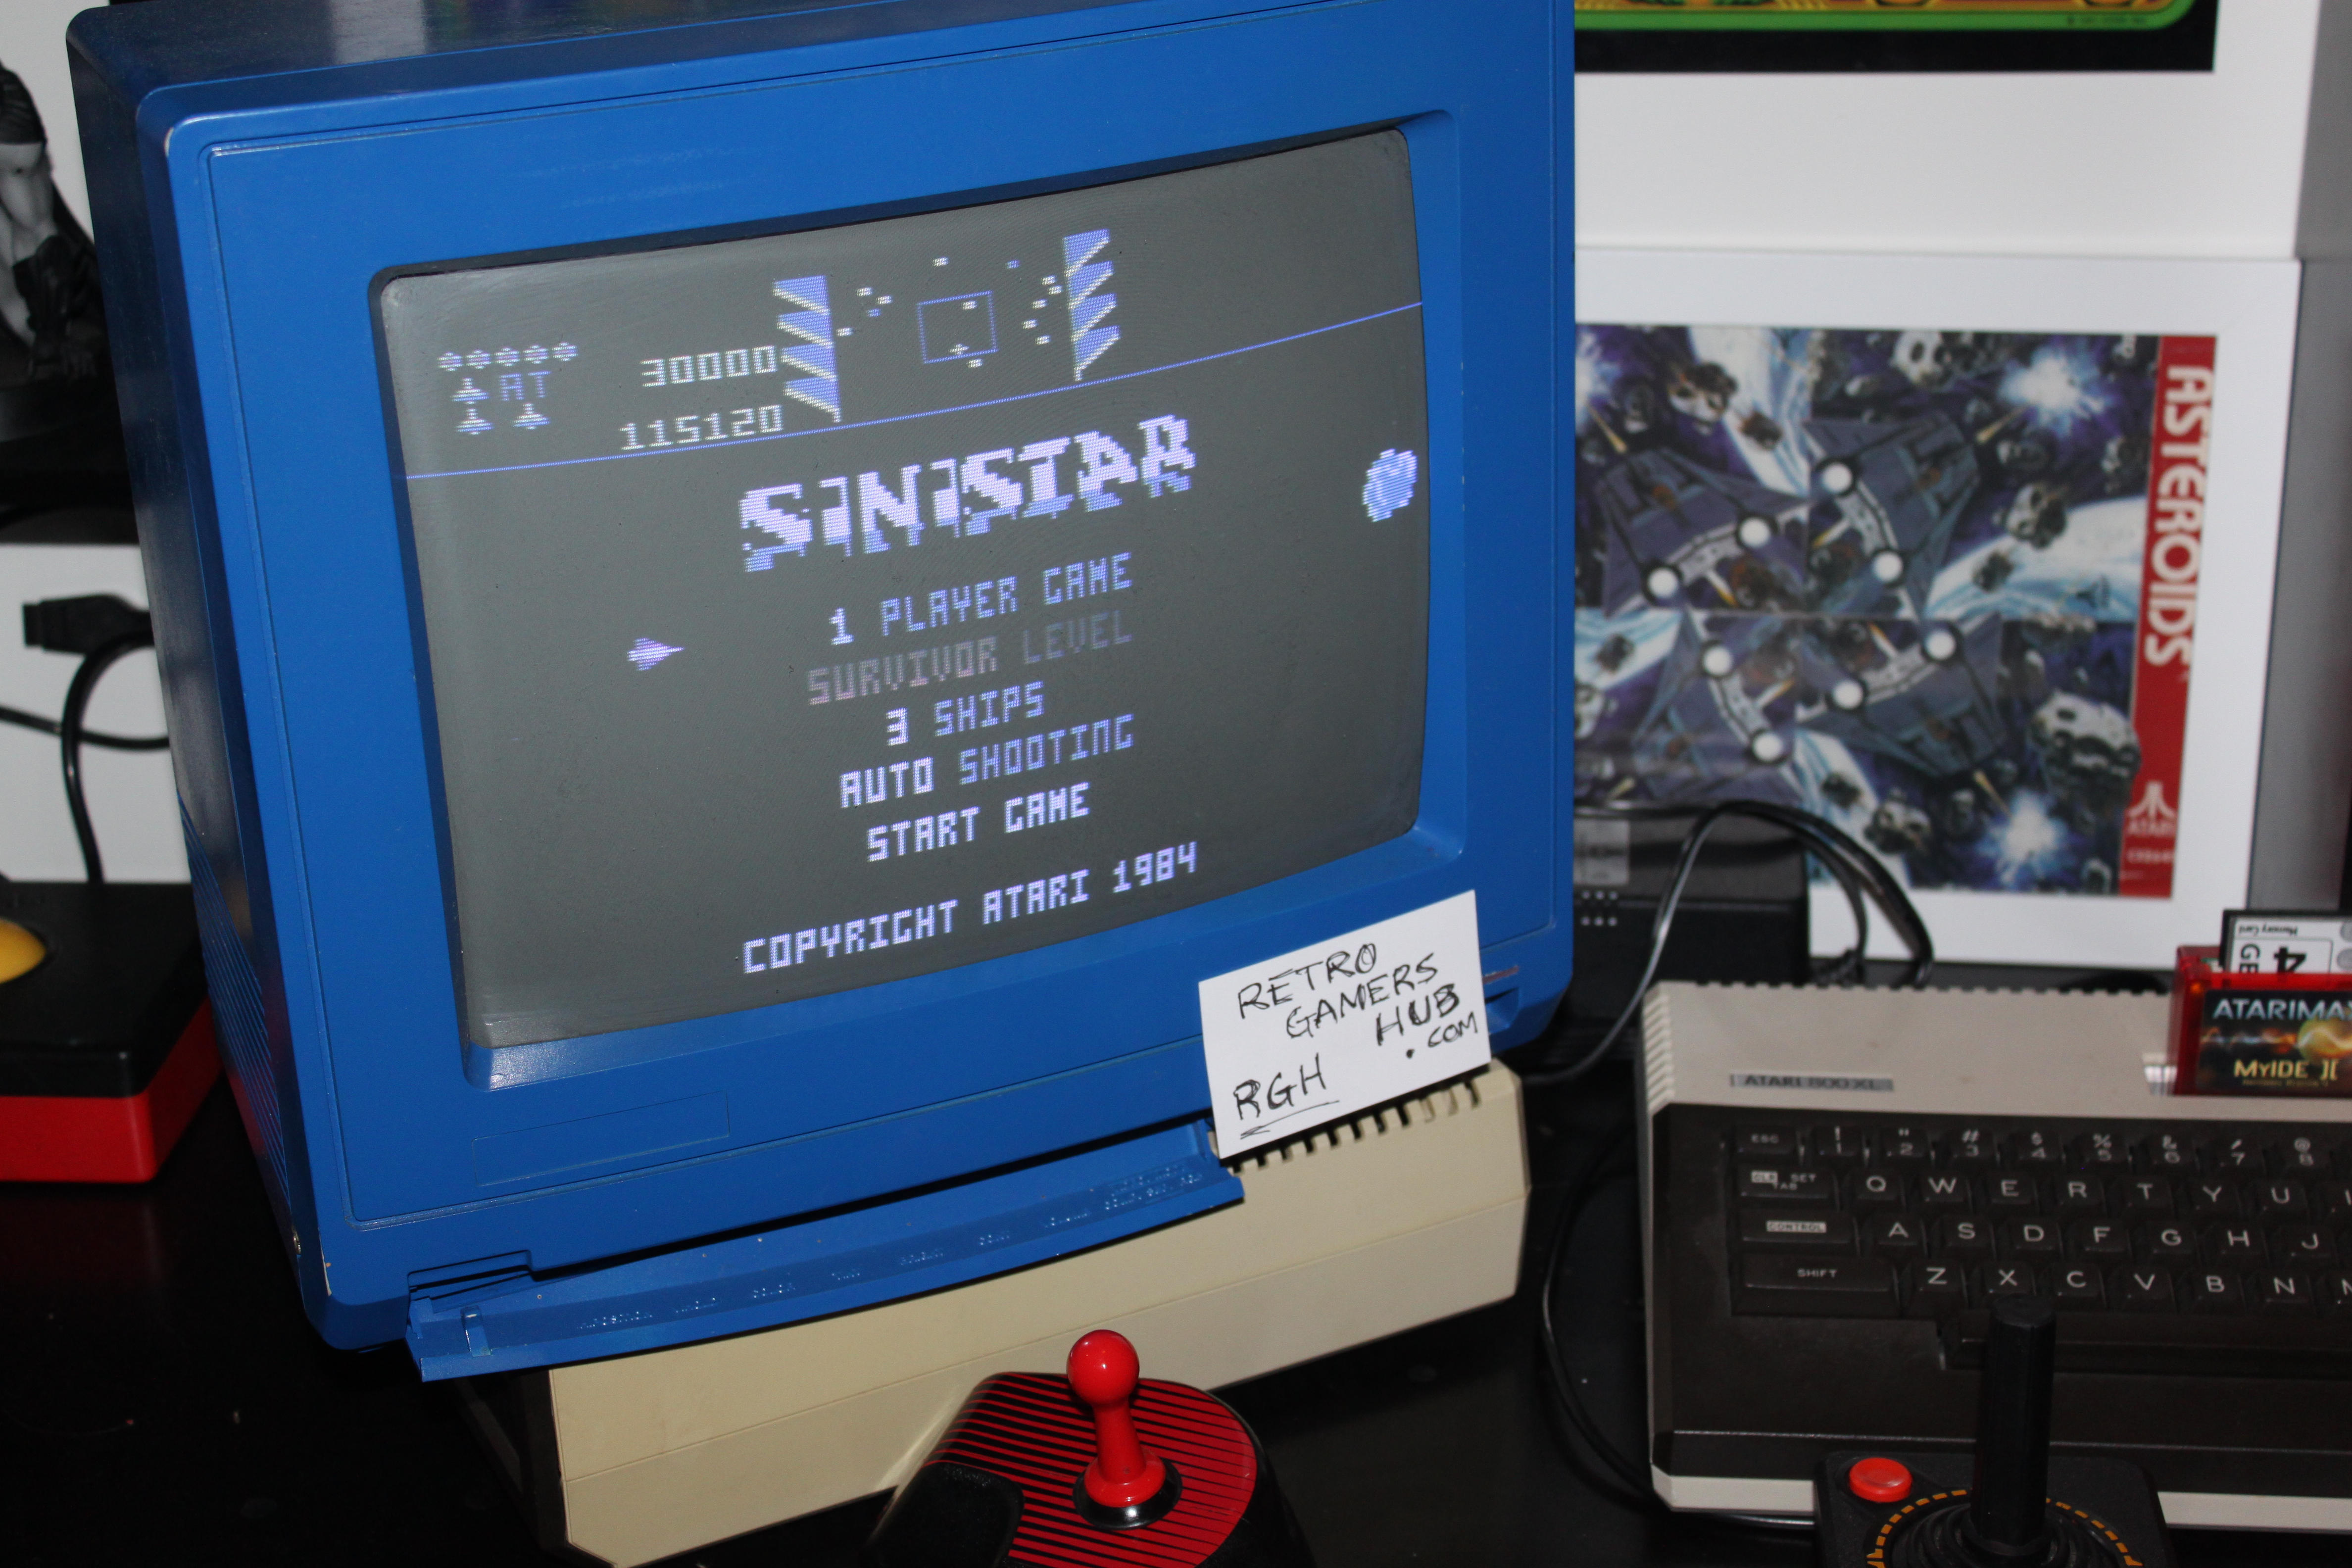 RetroGamersHub: Sinistar (Atari 400/800/XL/XE) 115,120 points on 2016-10-13 04:27:00